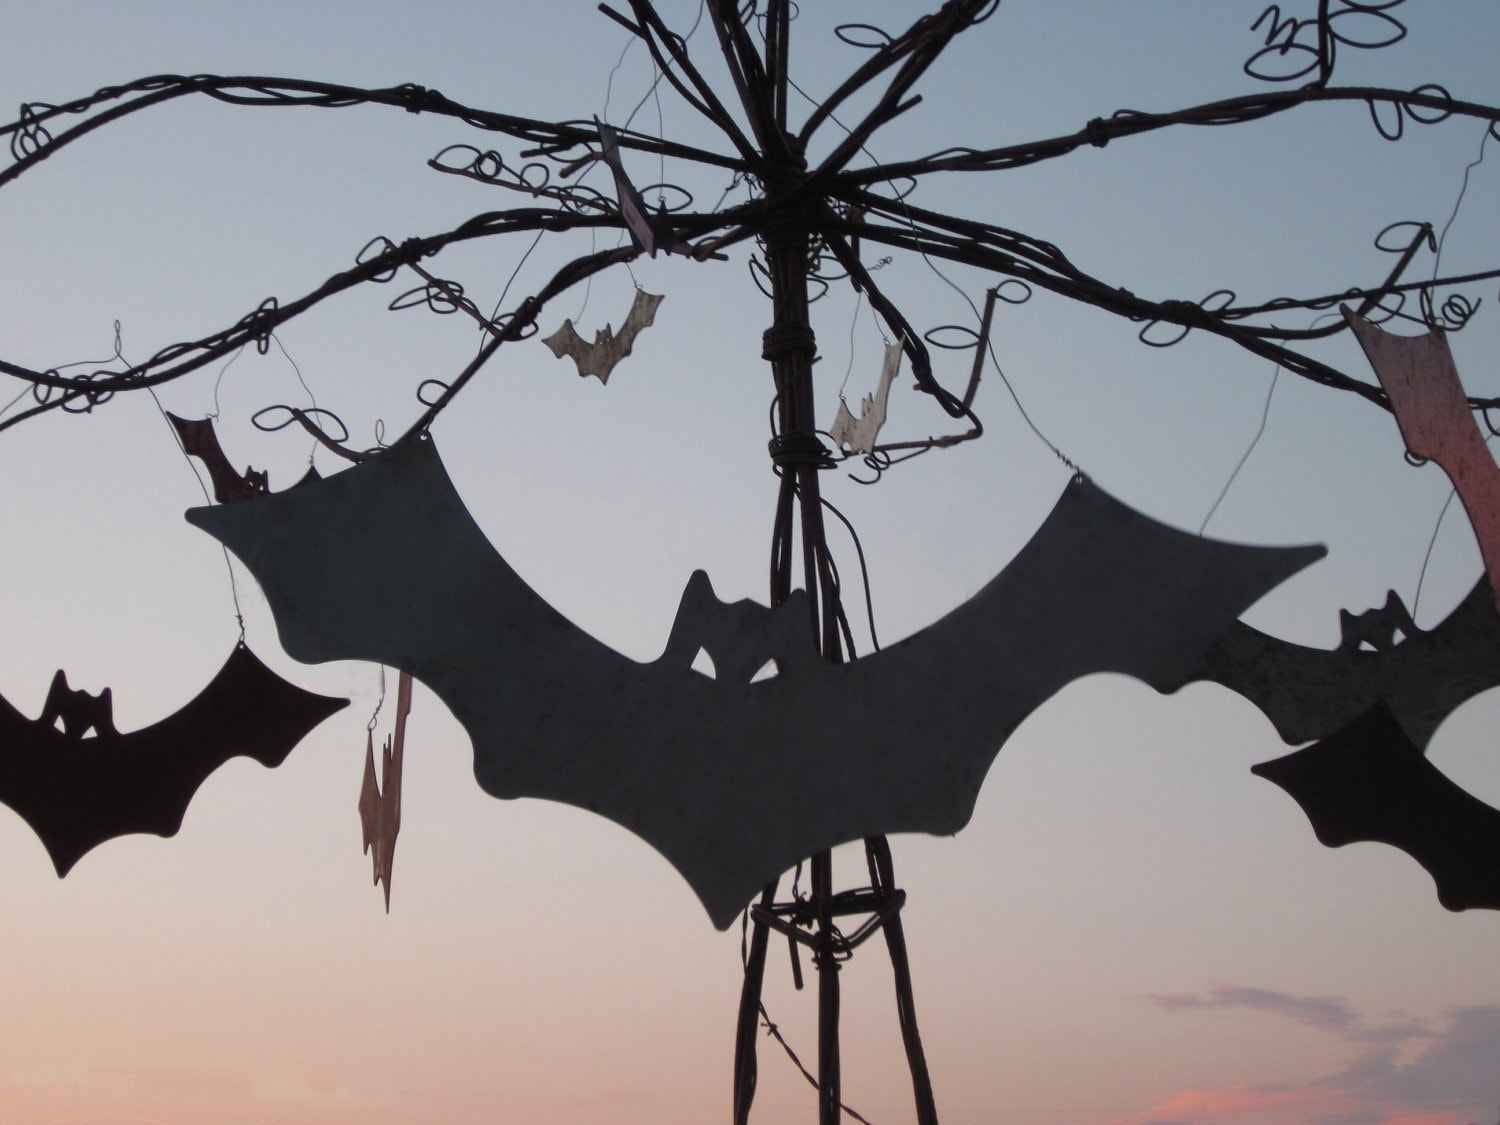 Flying Bat Attack - Handmade Metal Sculpture